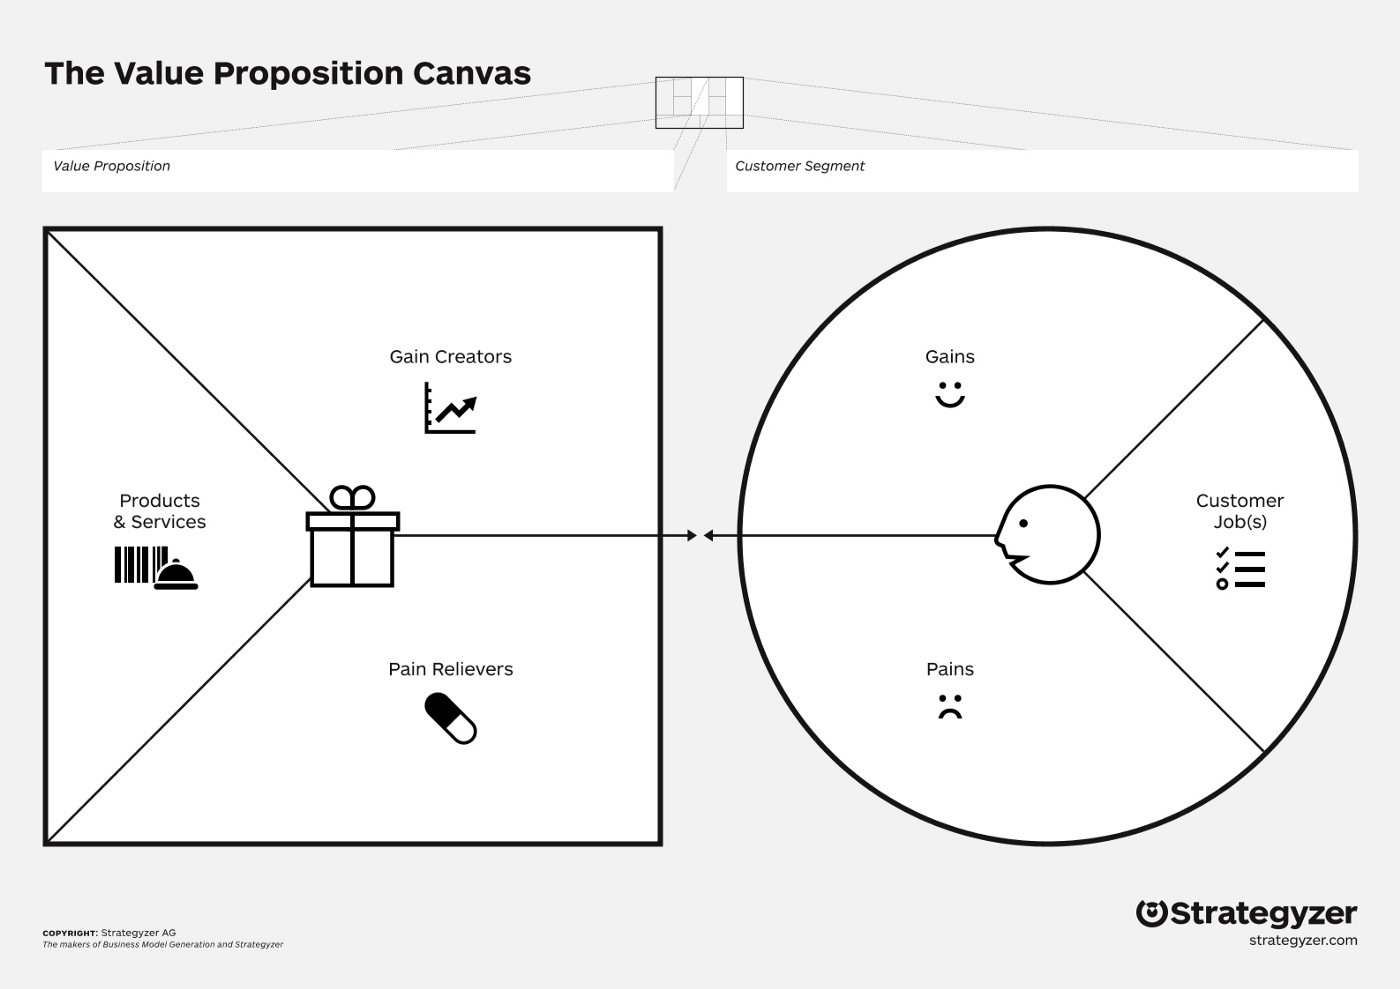 The value proposition canvas from Strategyzer.